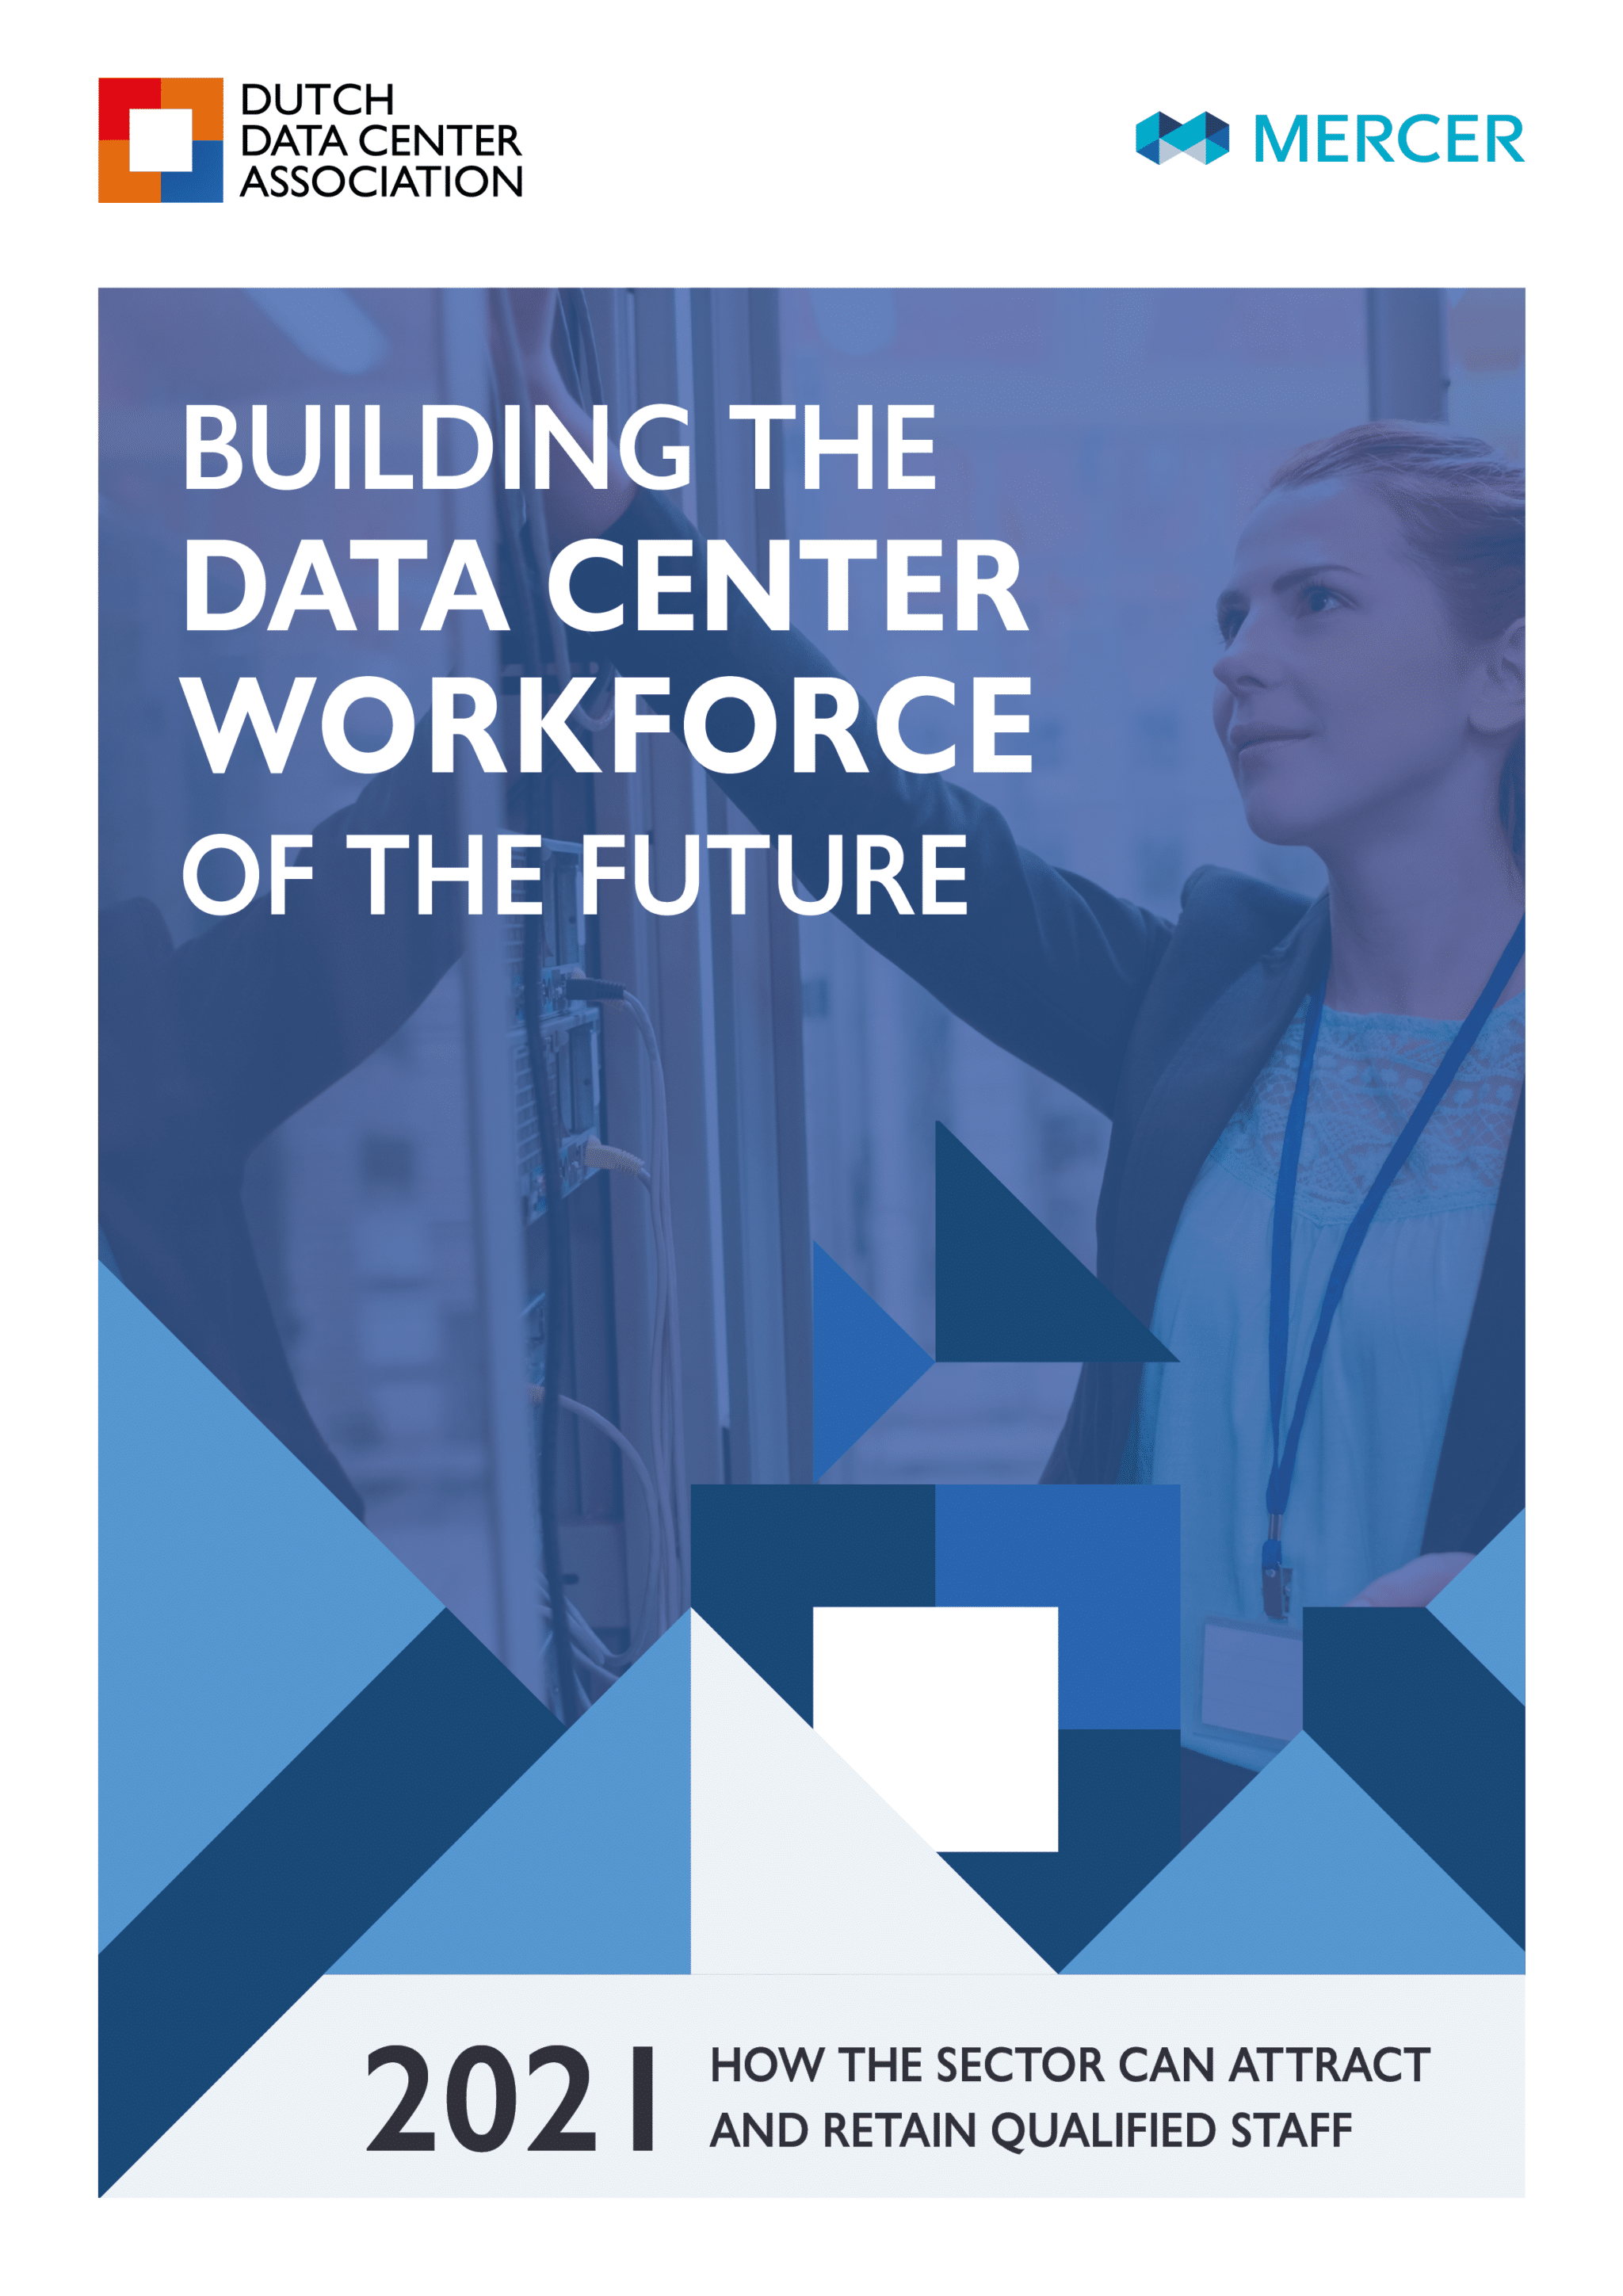 Building the Data Center Workforce of the Future 2021